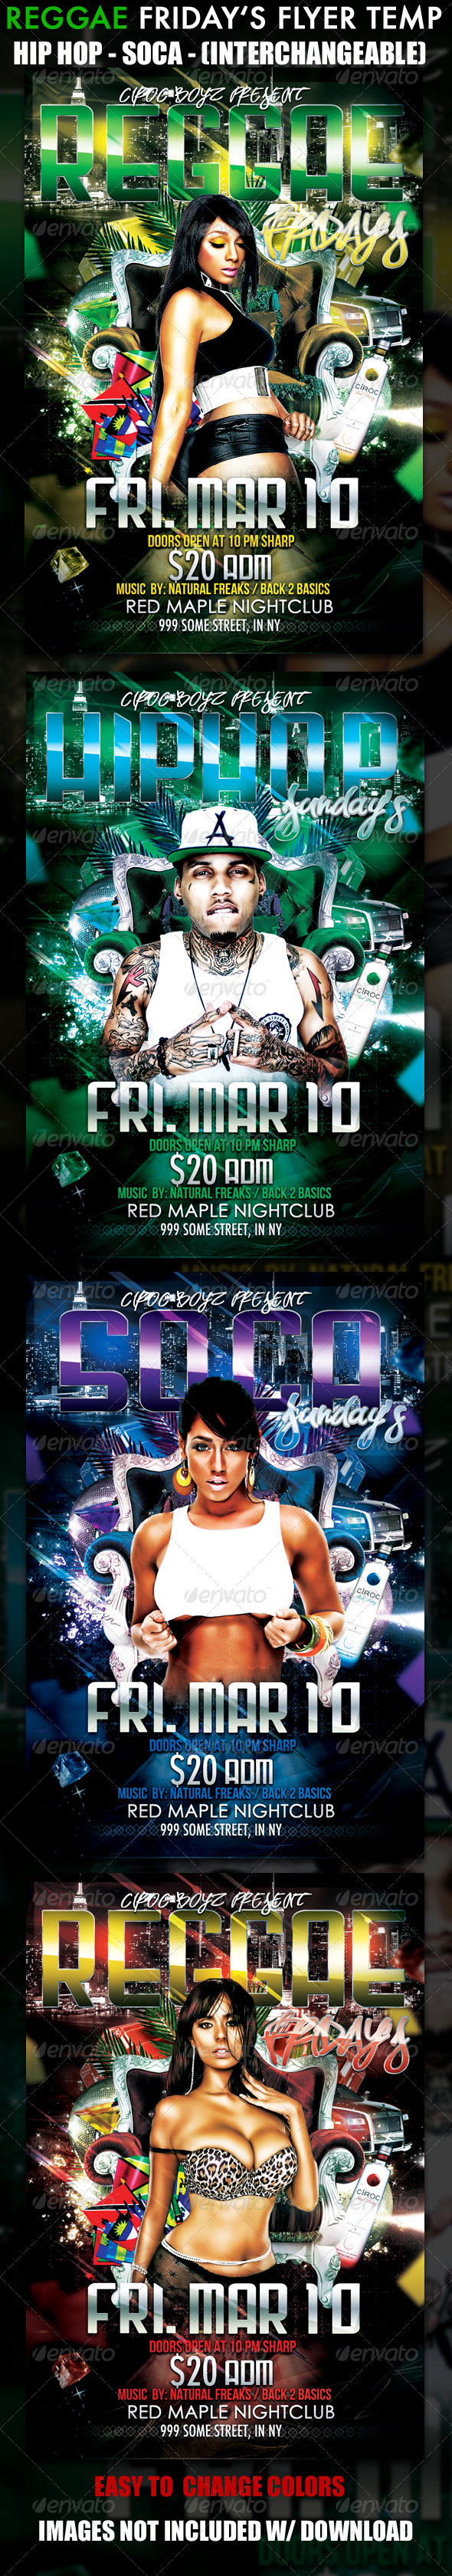 GraphicRiver Reggae Friday's Flyer Template 1686585